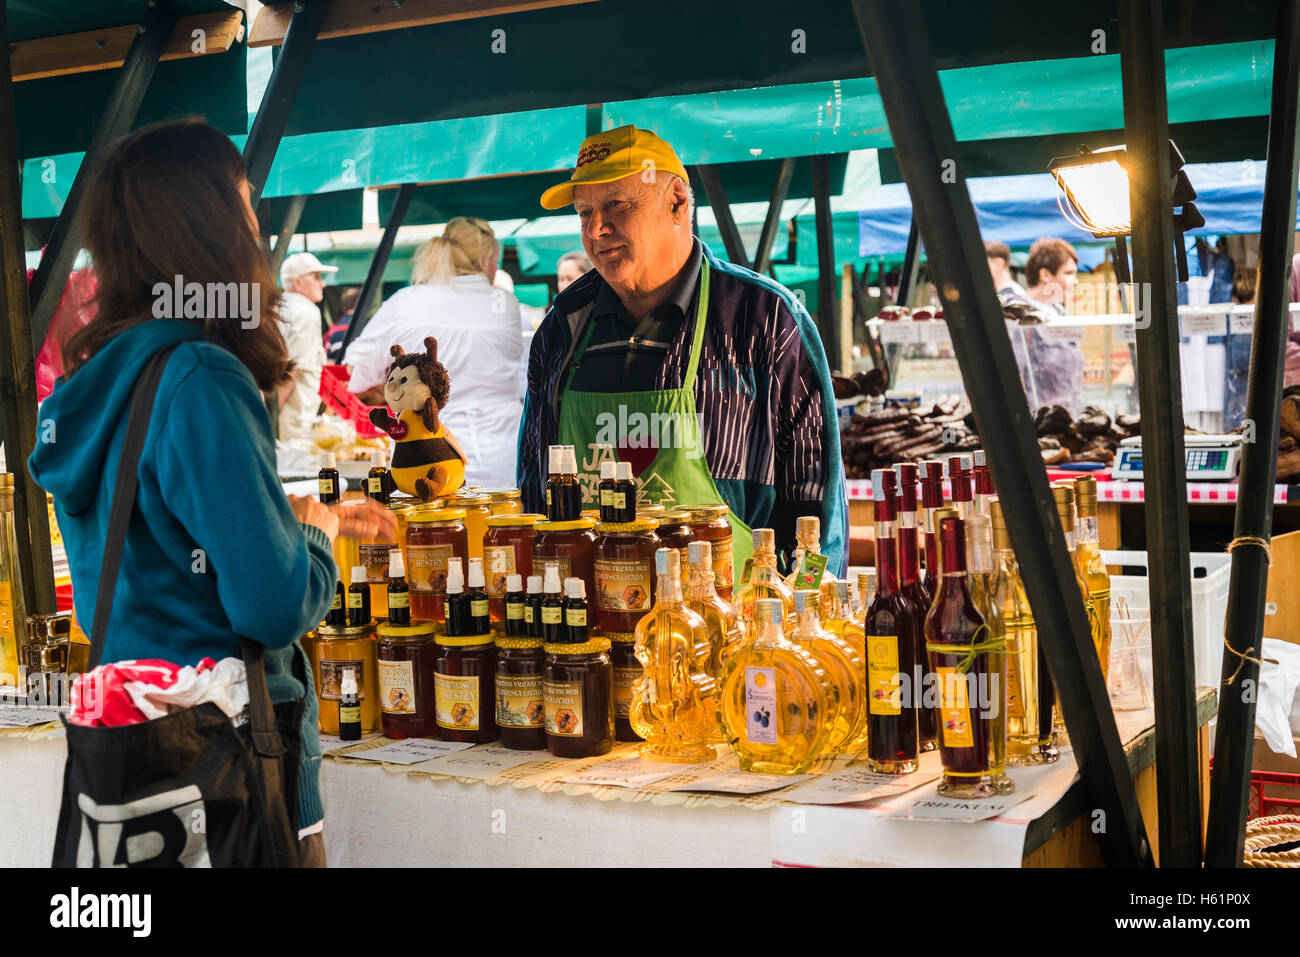 Stall with homemade honey, brandy and liqueur, Producers' artisan market, Ban Jelacic Square, Zagreb, Croatia - Stock Image